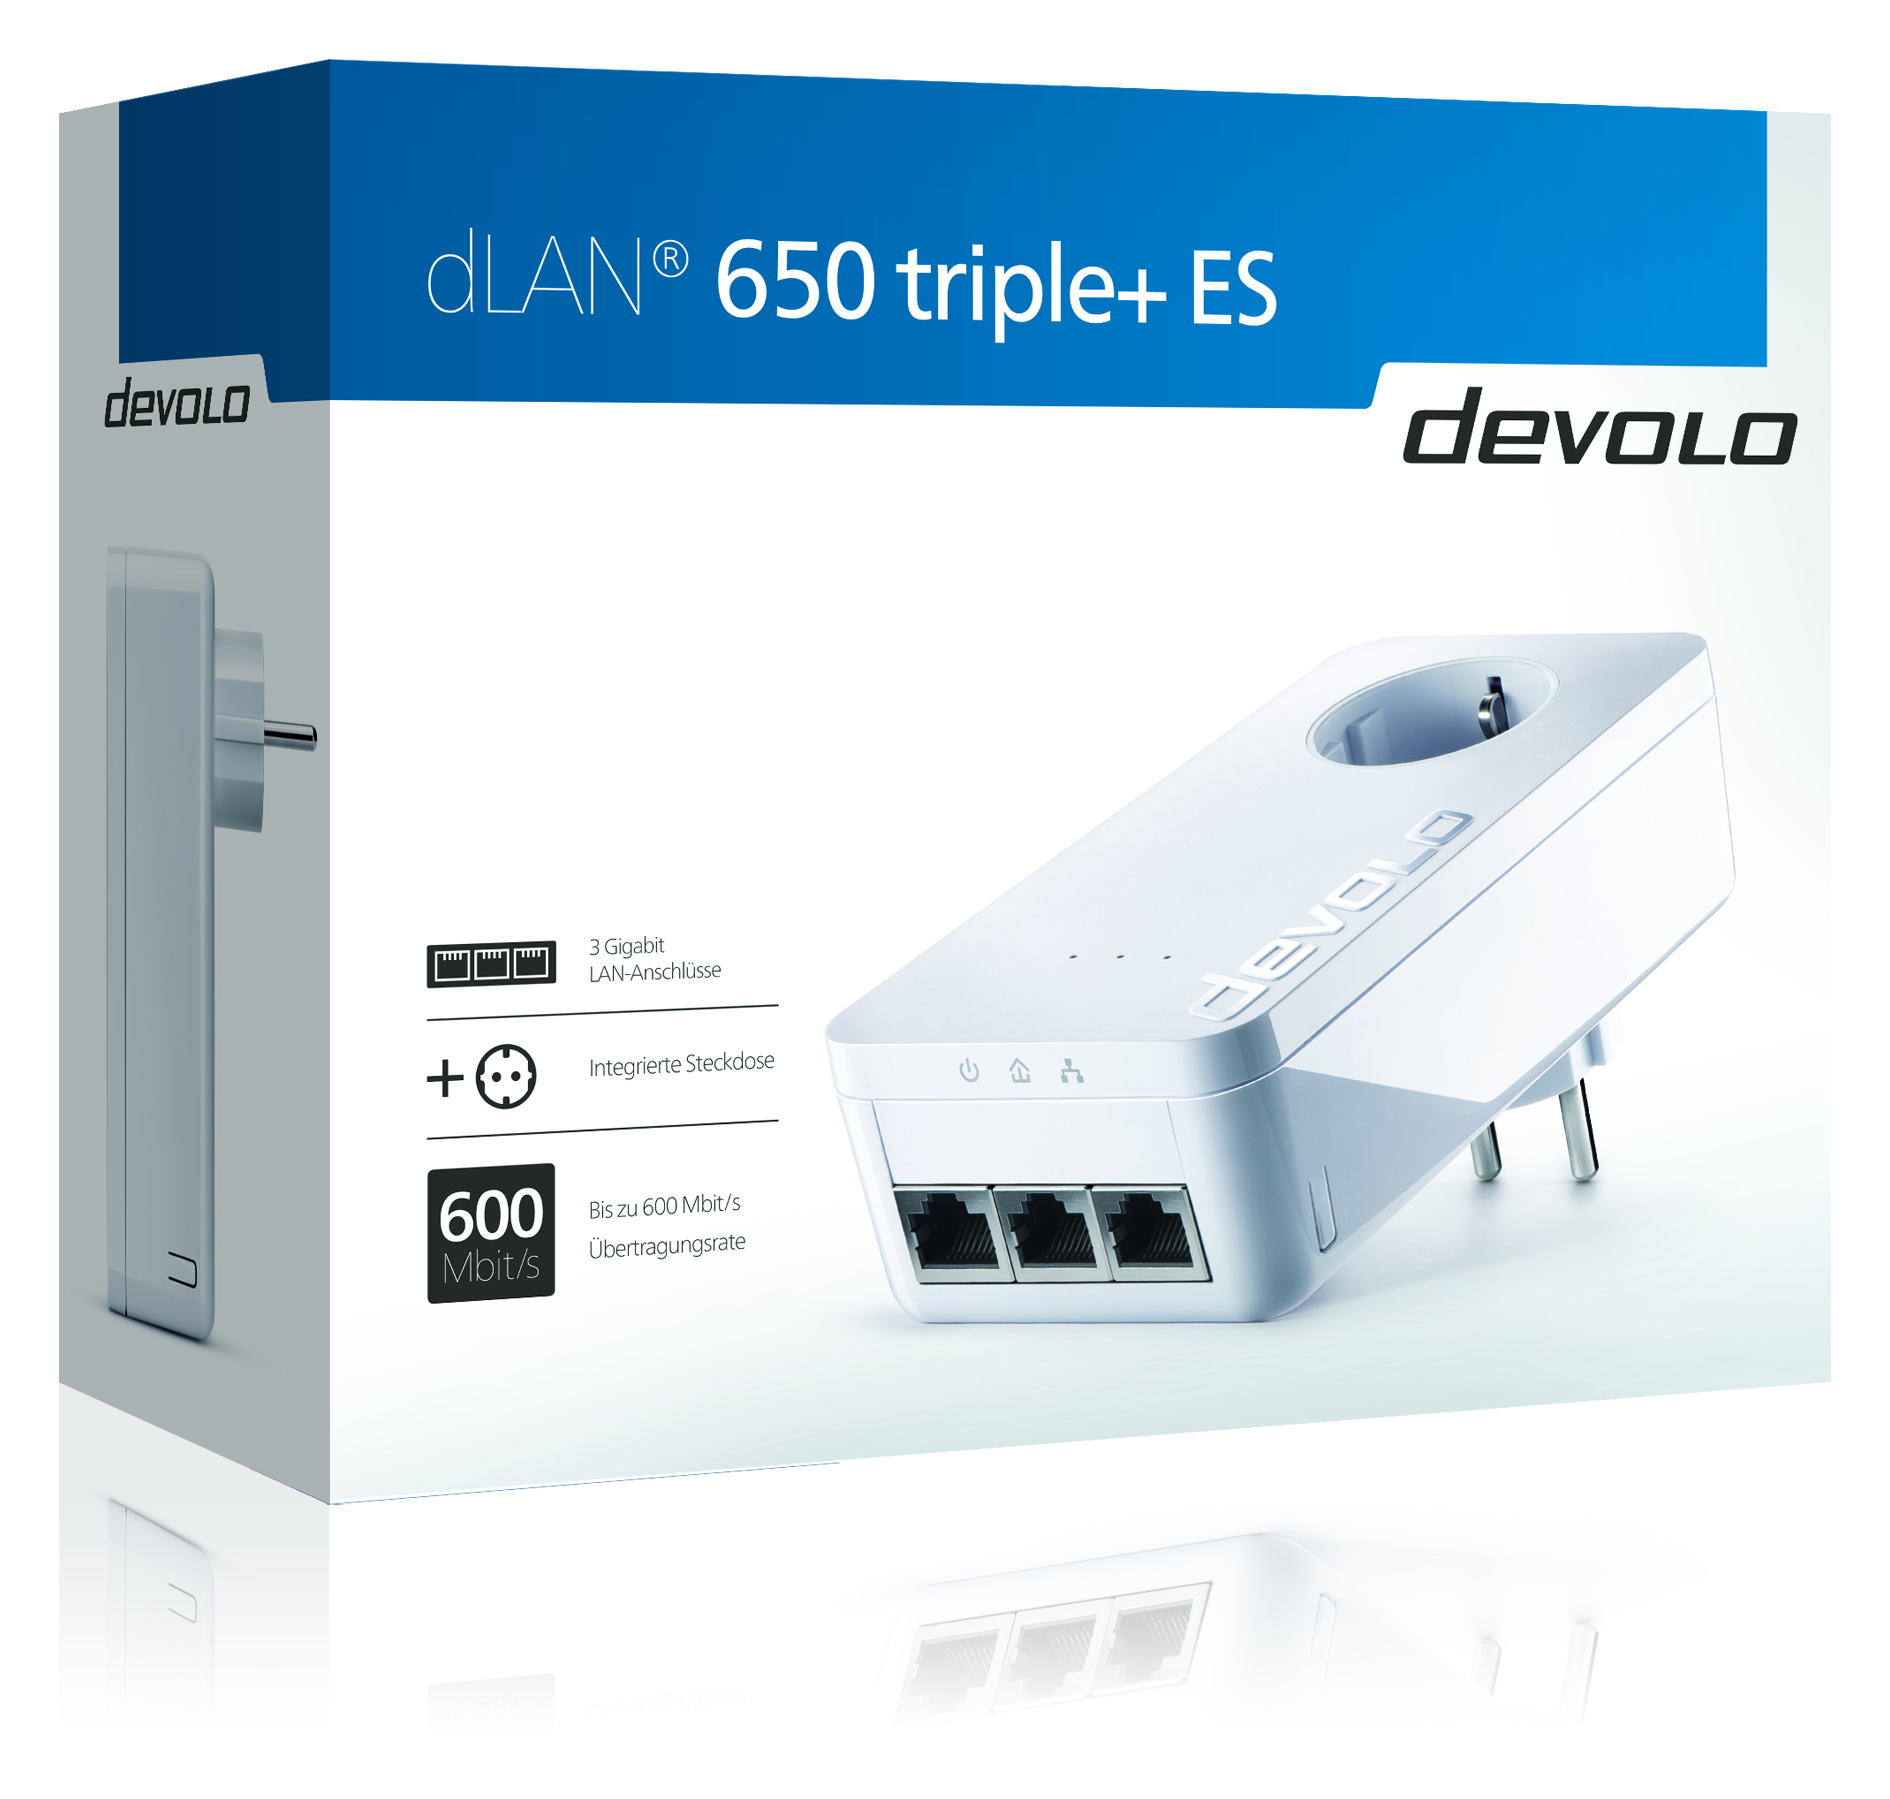 dev_dLAN650triple+ES_packshot